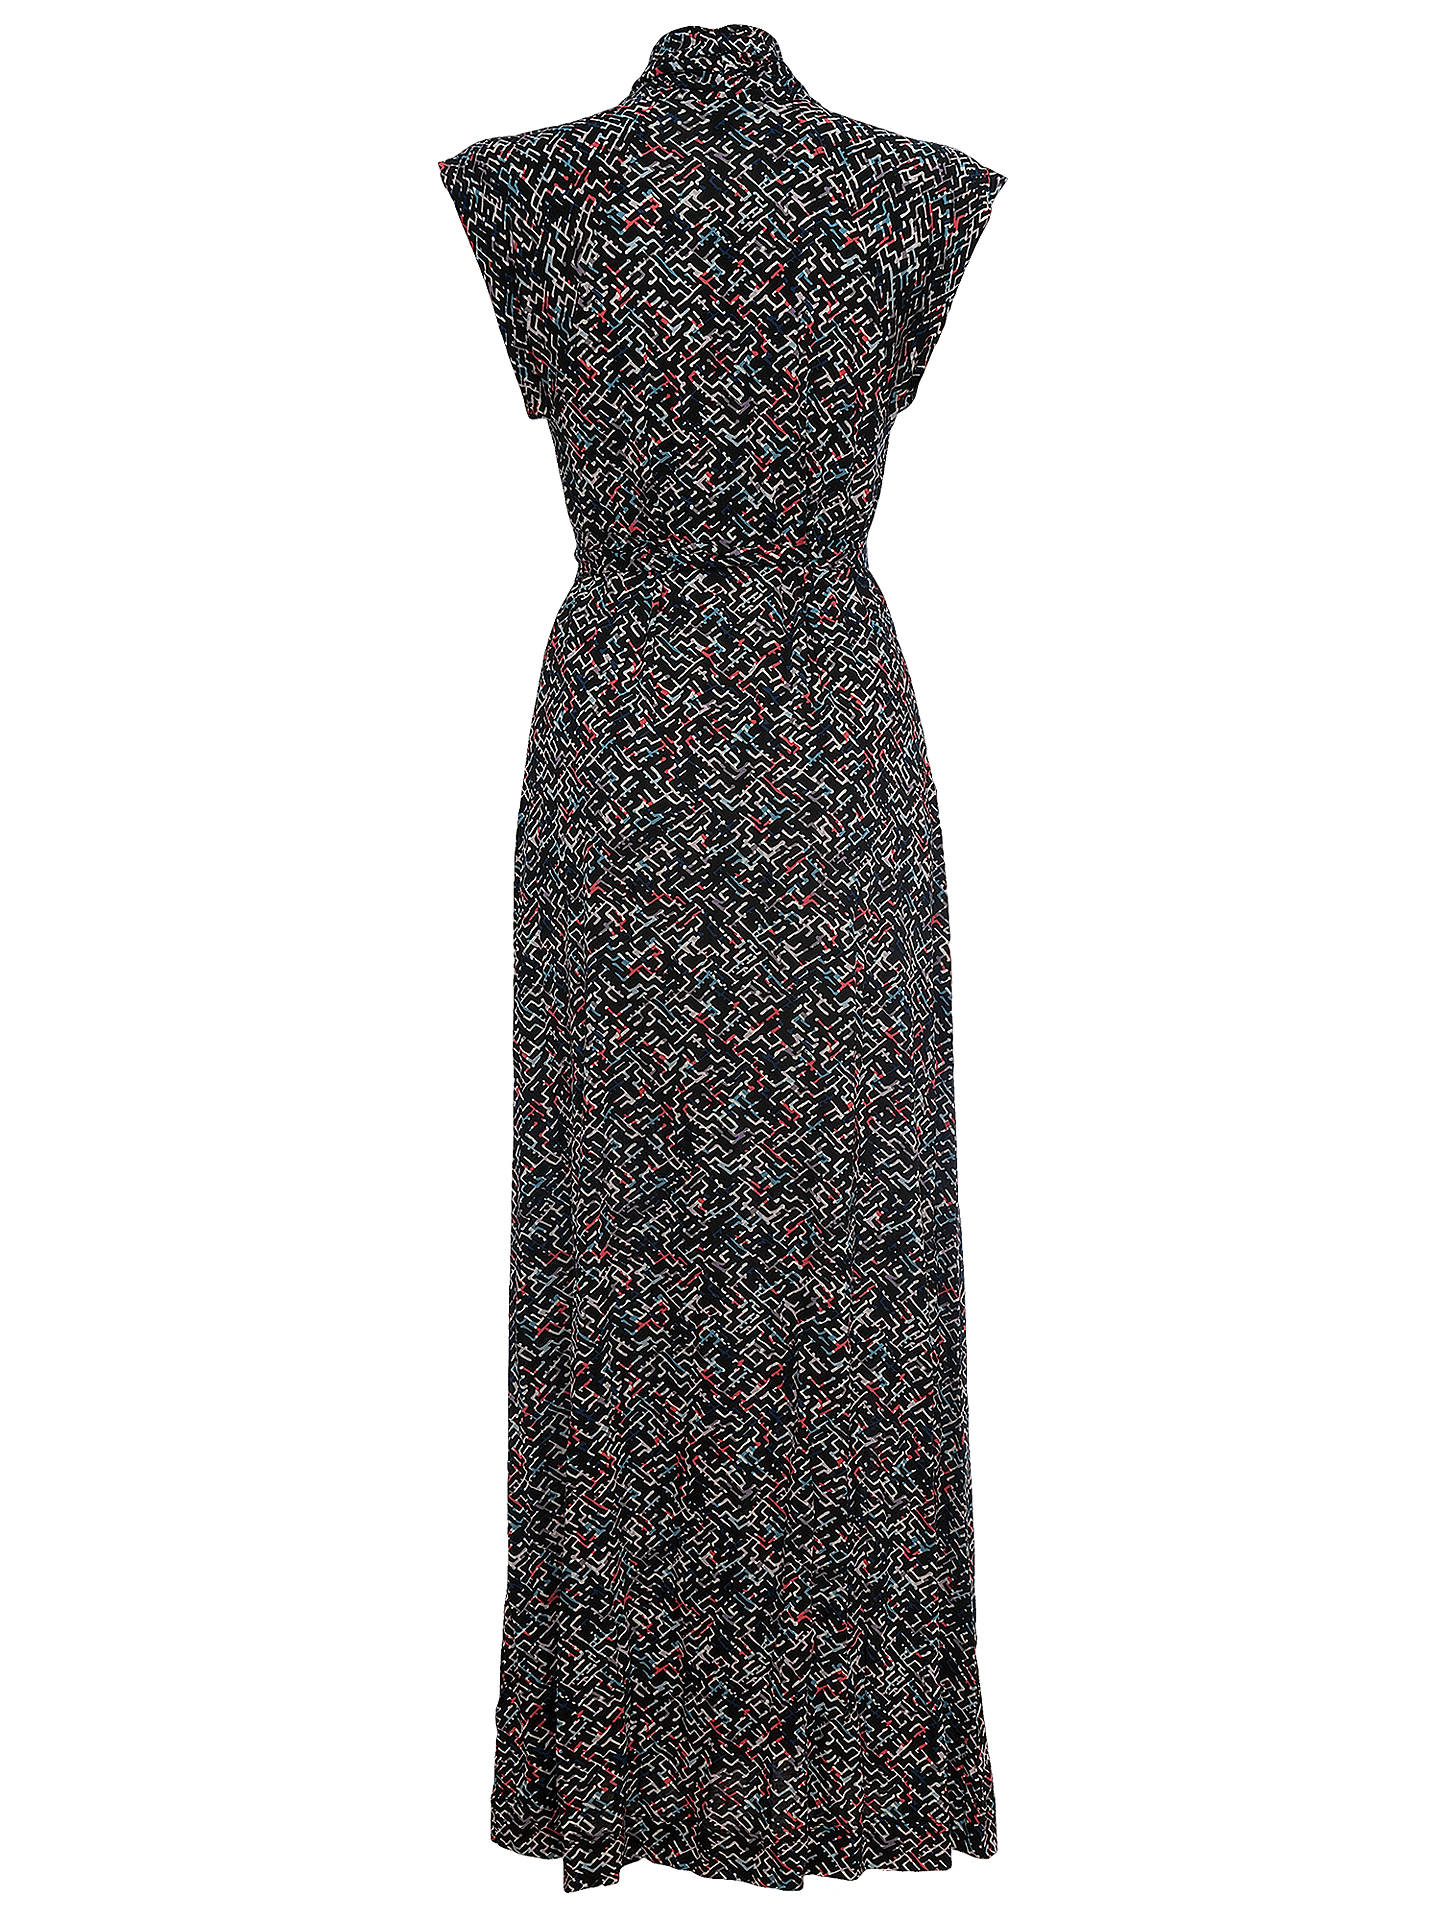 e25f51c3759 Buy French Connection Shadow Maxi Tie Dress, Confetti Grid, 6 Online at  johnlewis.